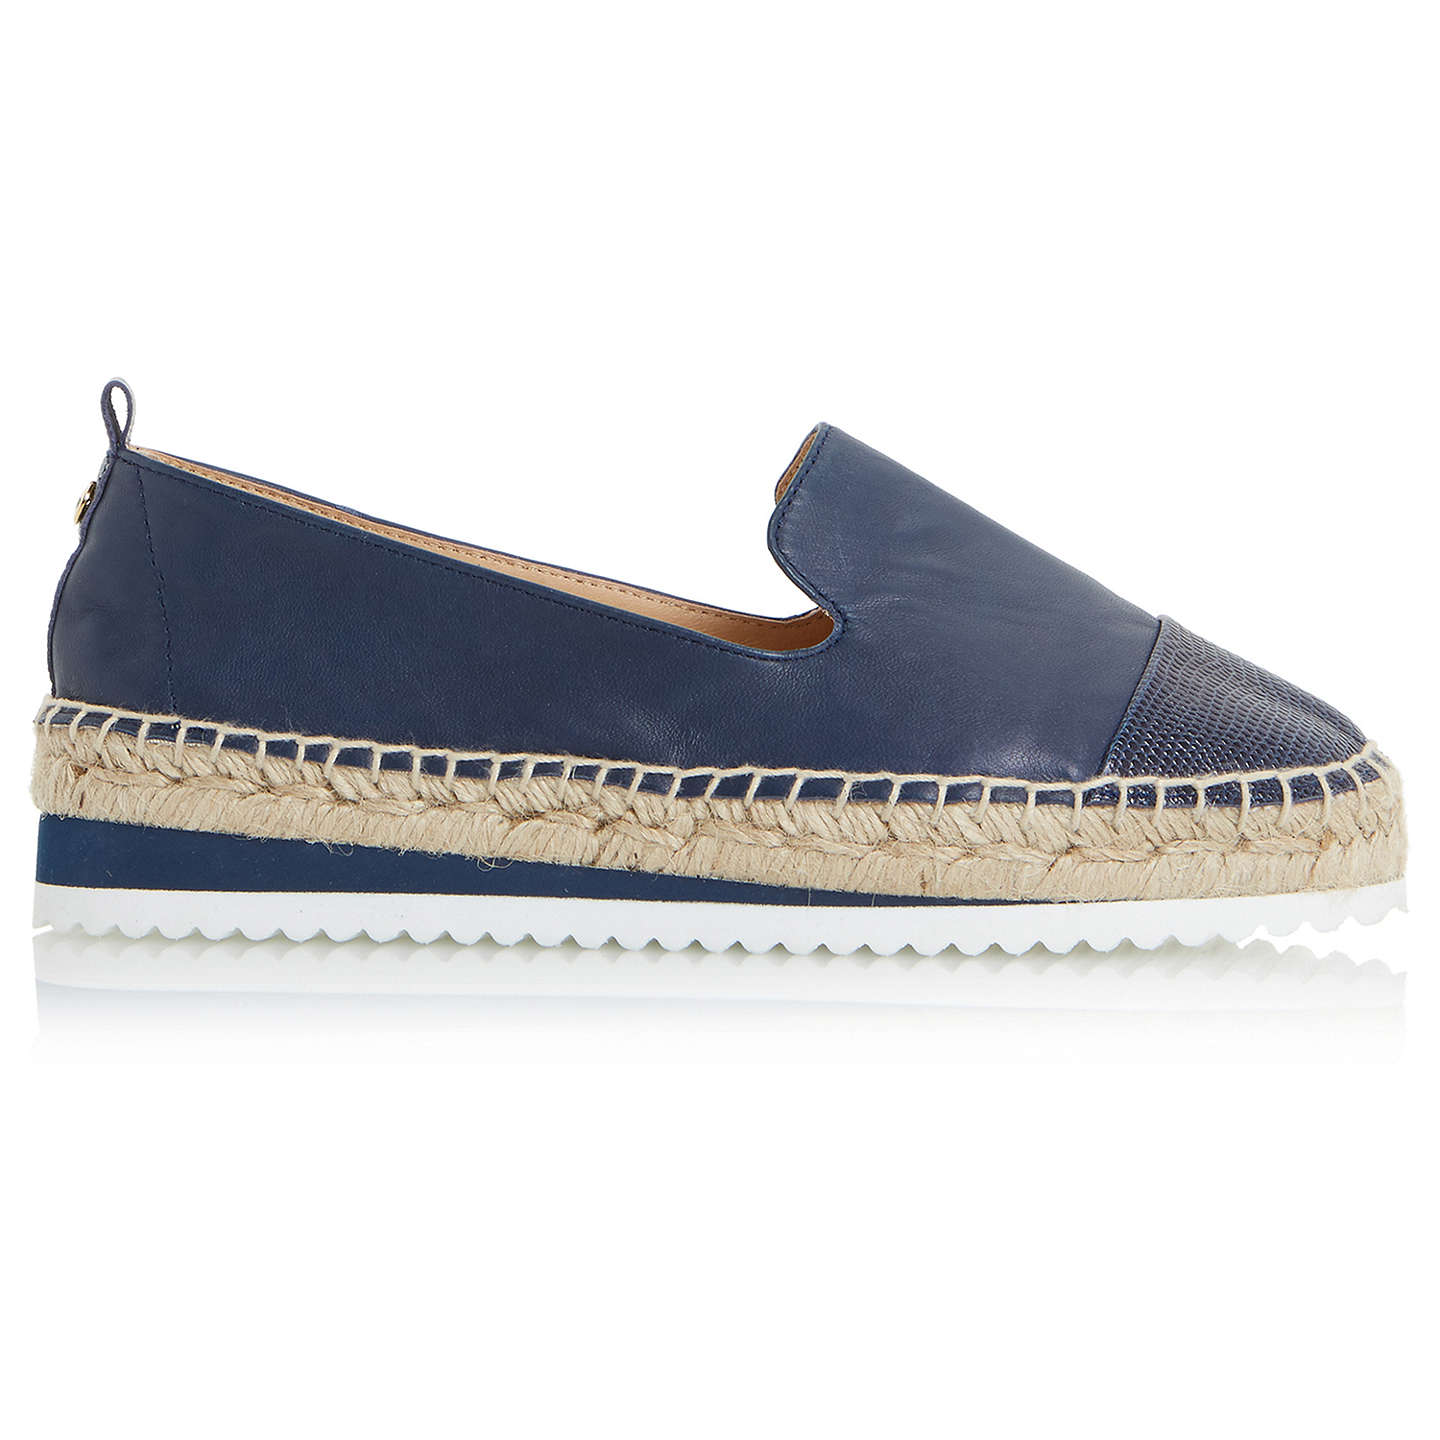 BuyDune Guest Espadrille Loafers, Navy, 3 Online at johnlewis.com